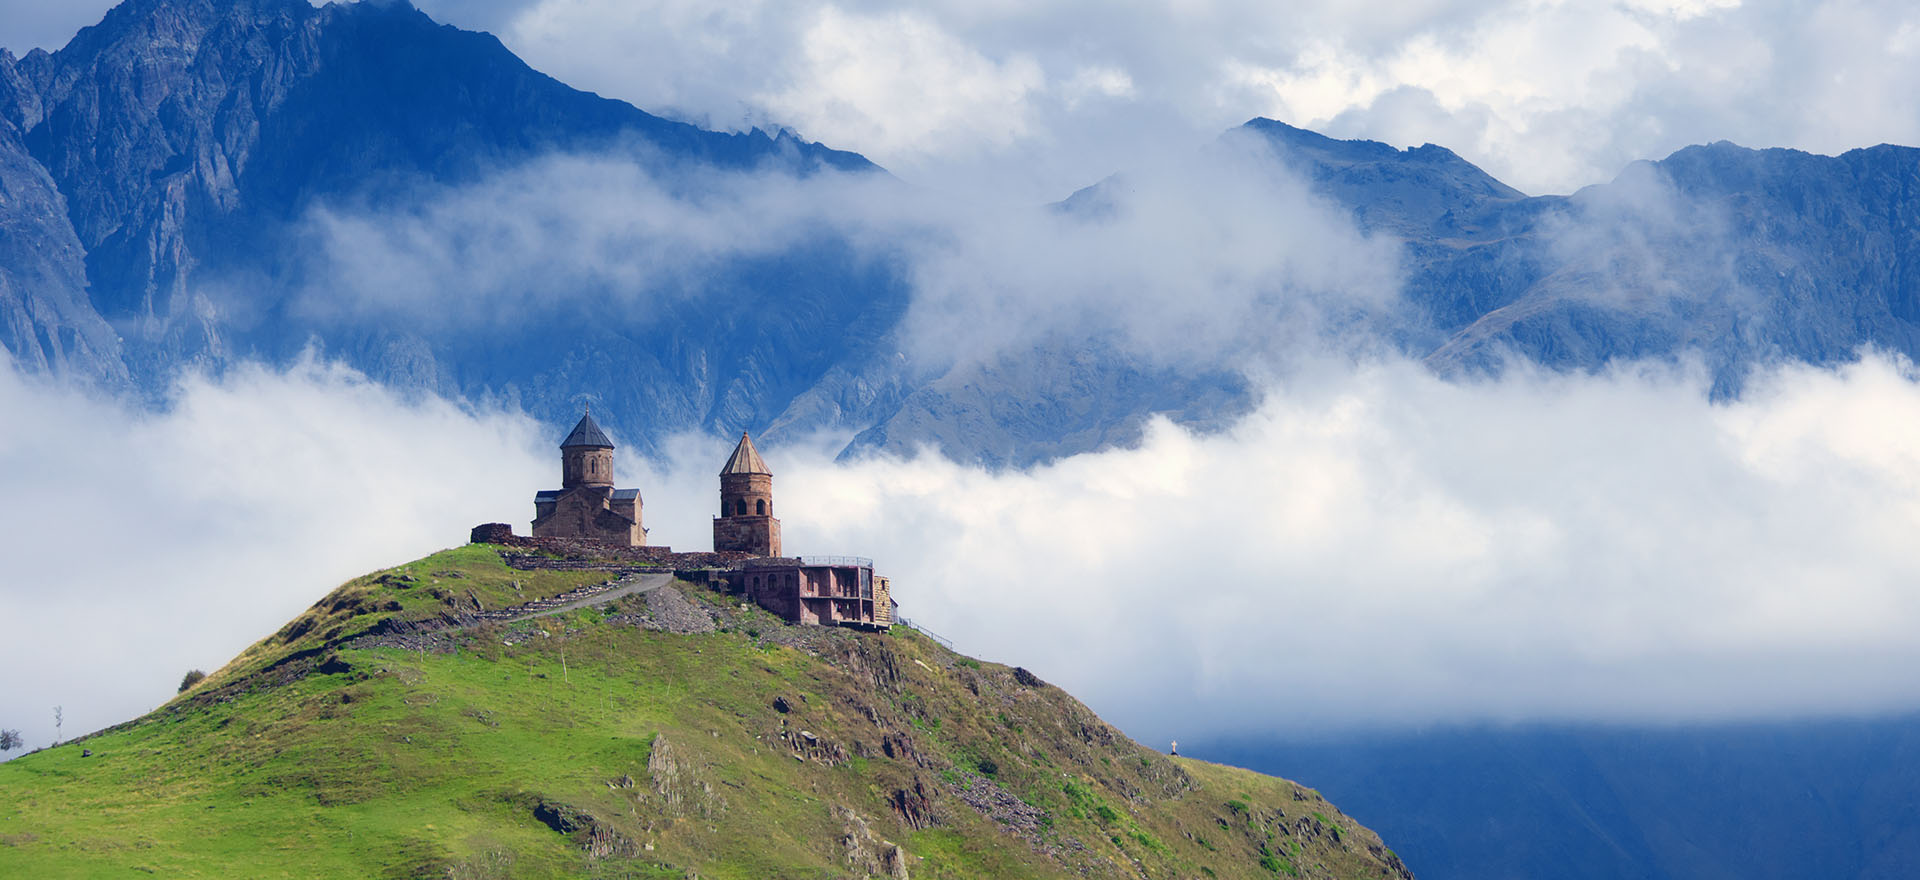 Gergeti Trinity Church on top of caucasus mountains surrounded by clouds